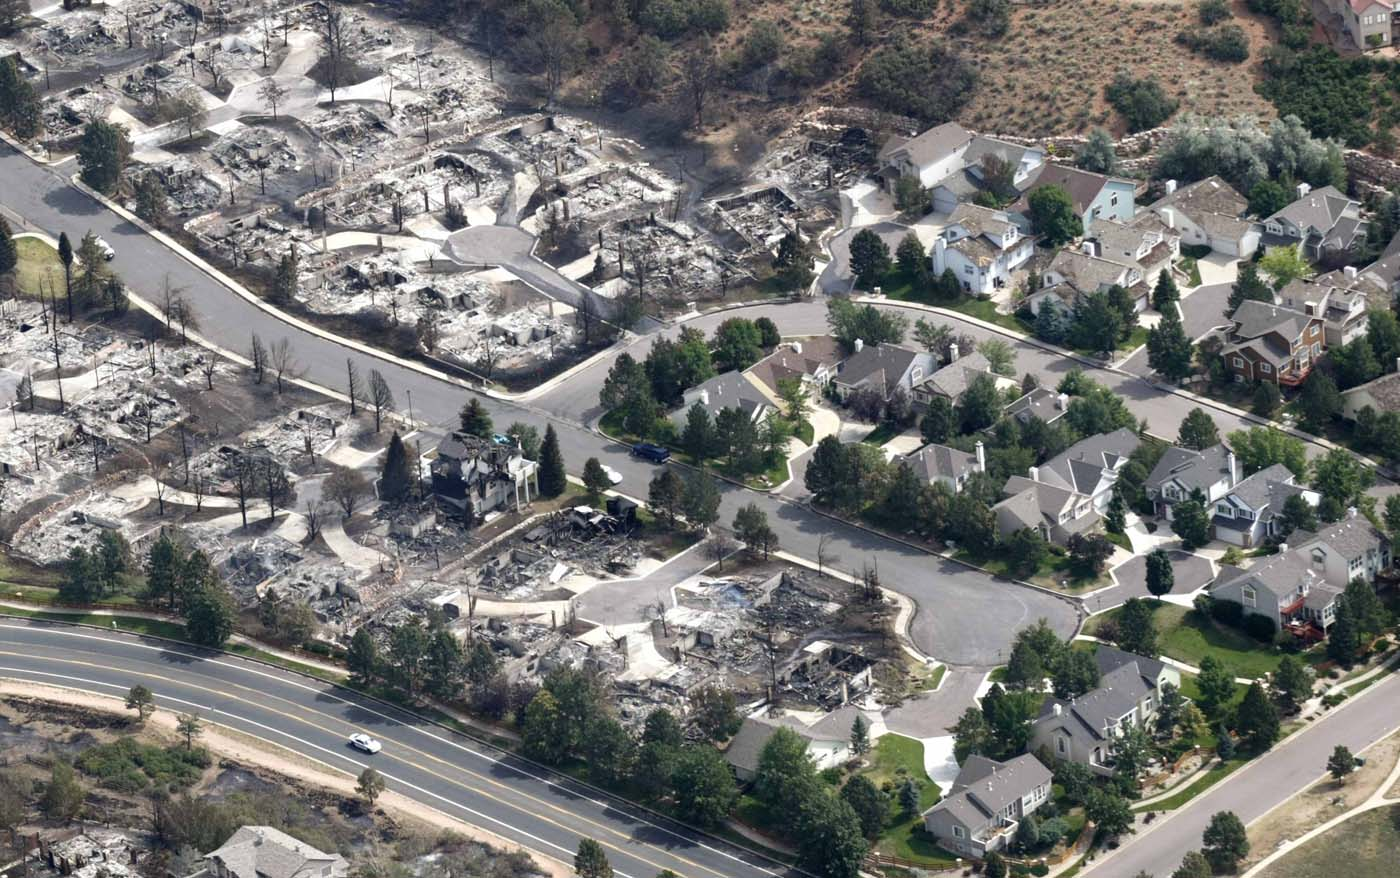 JUNE 28: An aerial photo shows the aftermath of the Waldo Canyon fire at a neighborhood with houses that were and were not destroyed by the fire in Colorado Springs, Colorado June 28, 2012. (Rick Wilking/Reuters)